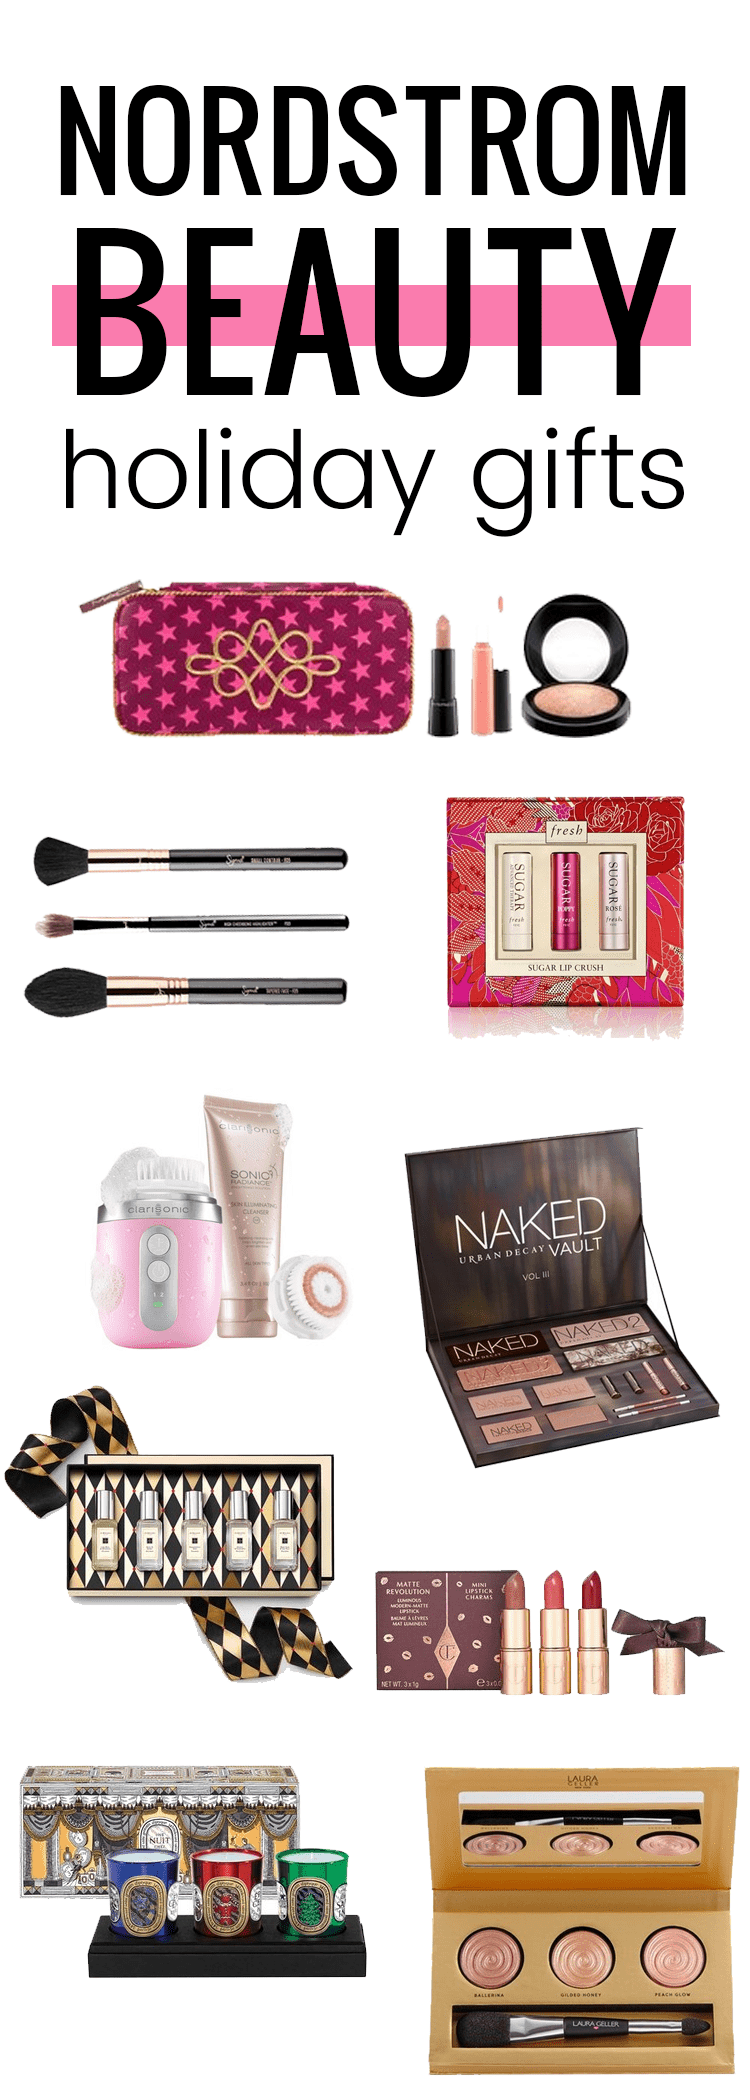 The best, most luxurious holiday gifts from Nordstrom Beauty!